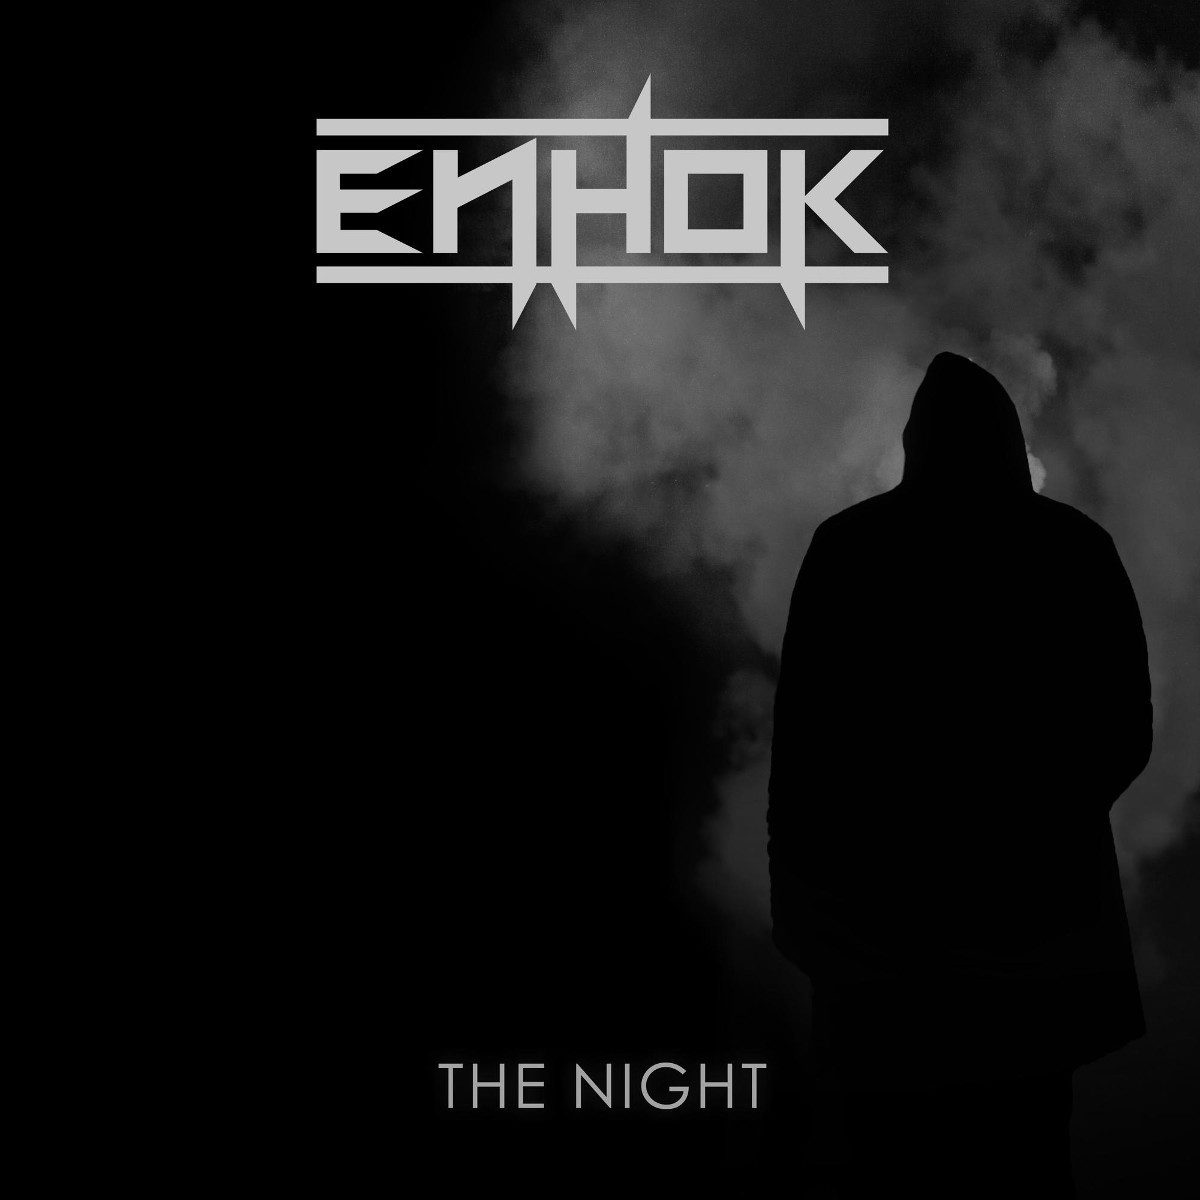 Electropop act Enhok launches brand new single 'The Night' via SkyQode records